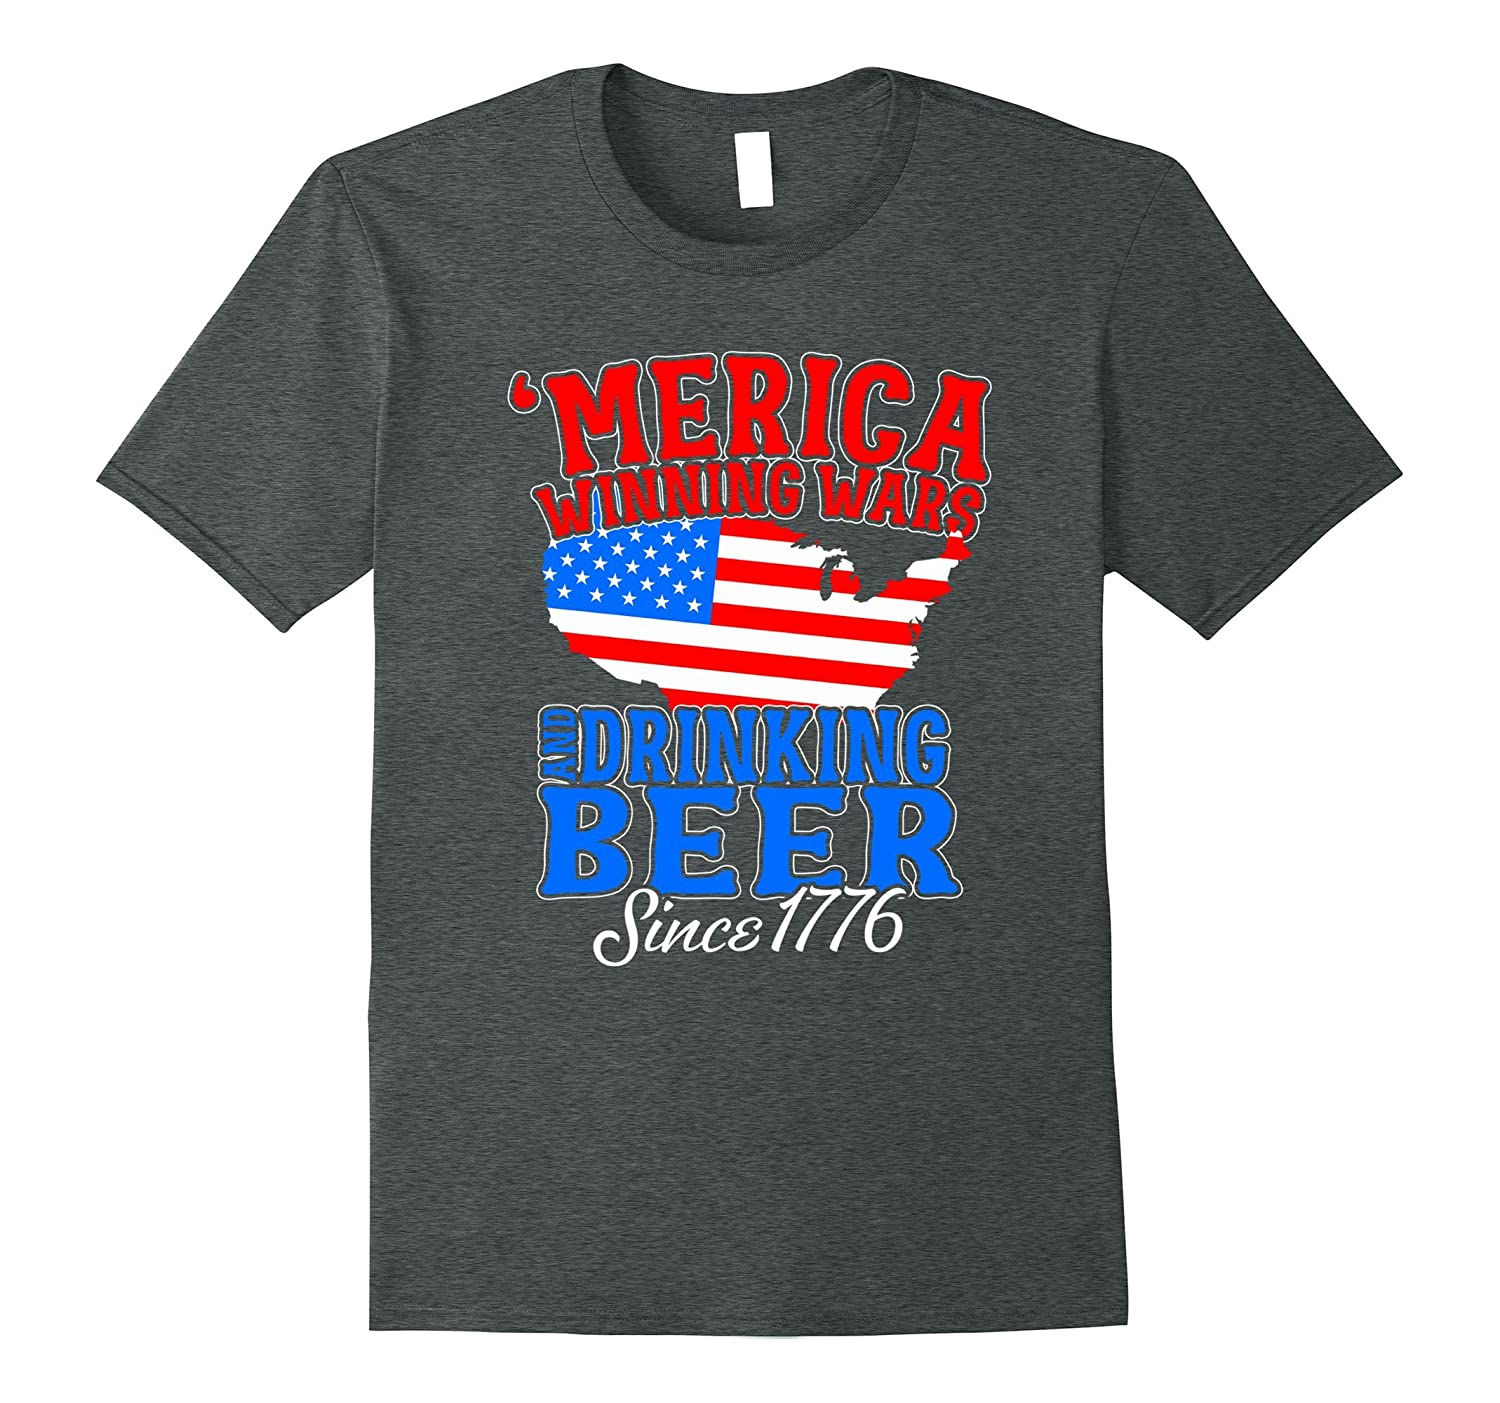 Merica Winning Wars And Drinking Beers Since 1776 Shirt-Vaci